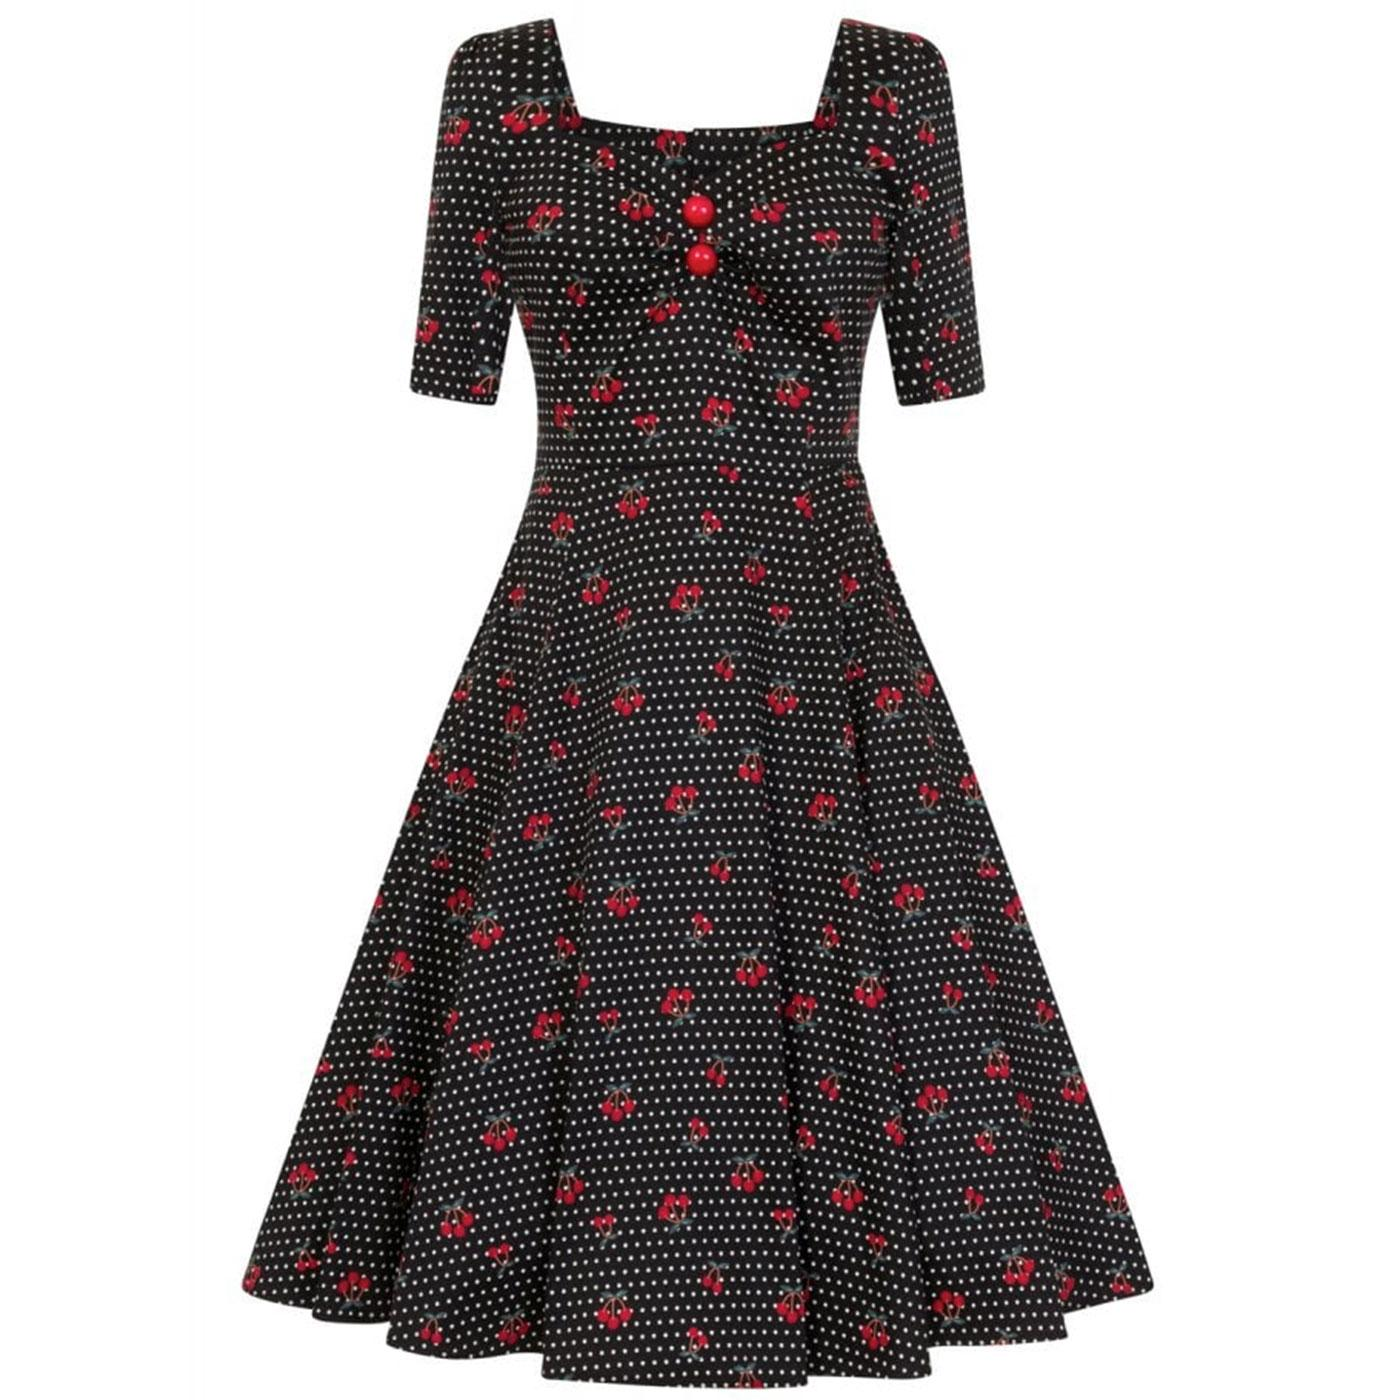 Dolores COLLECTIF Retro 50s Cherry Polka Dot Dress